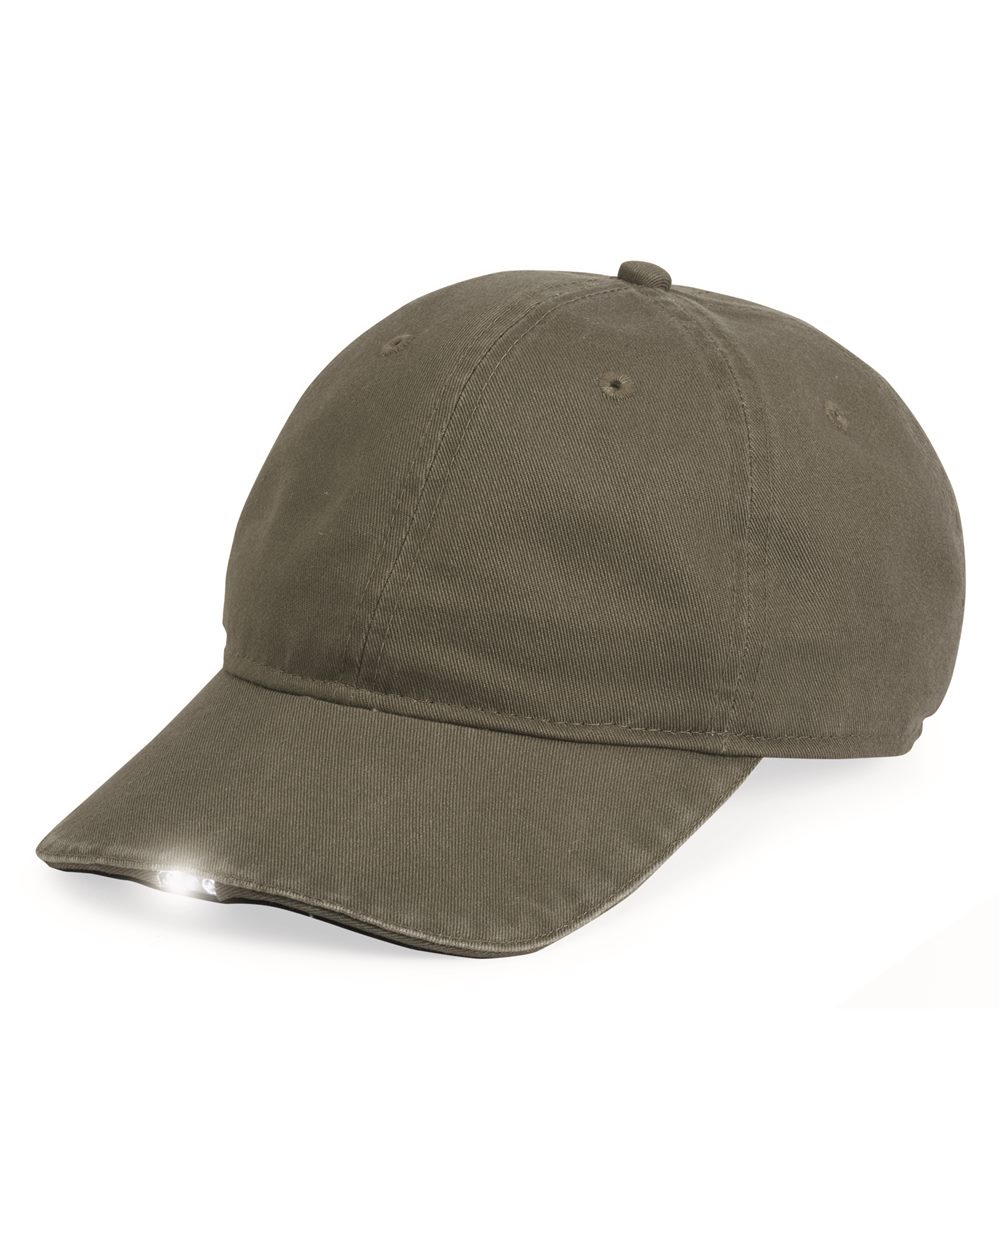 Outdoor Cap HIB652 - Hibeam Lighted Cotton Cap